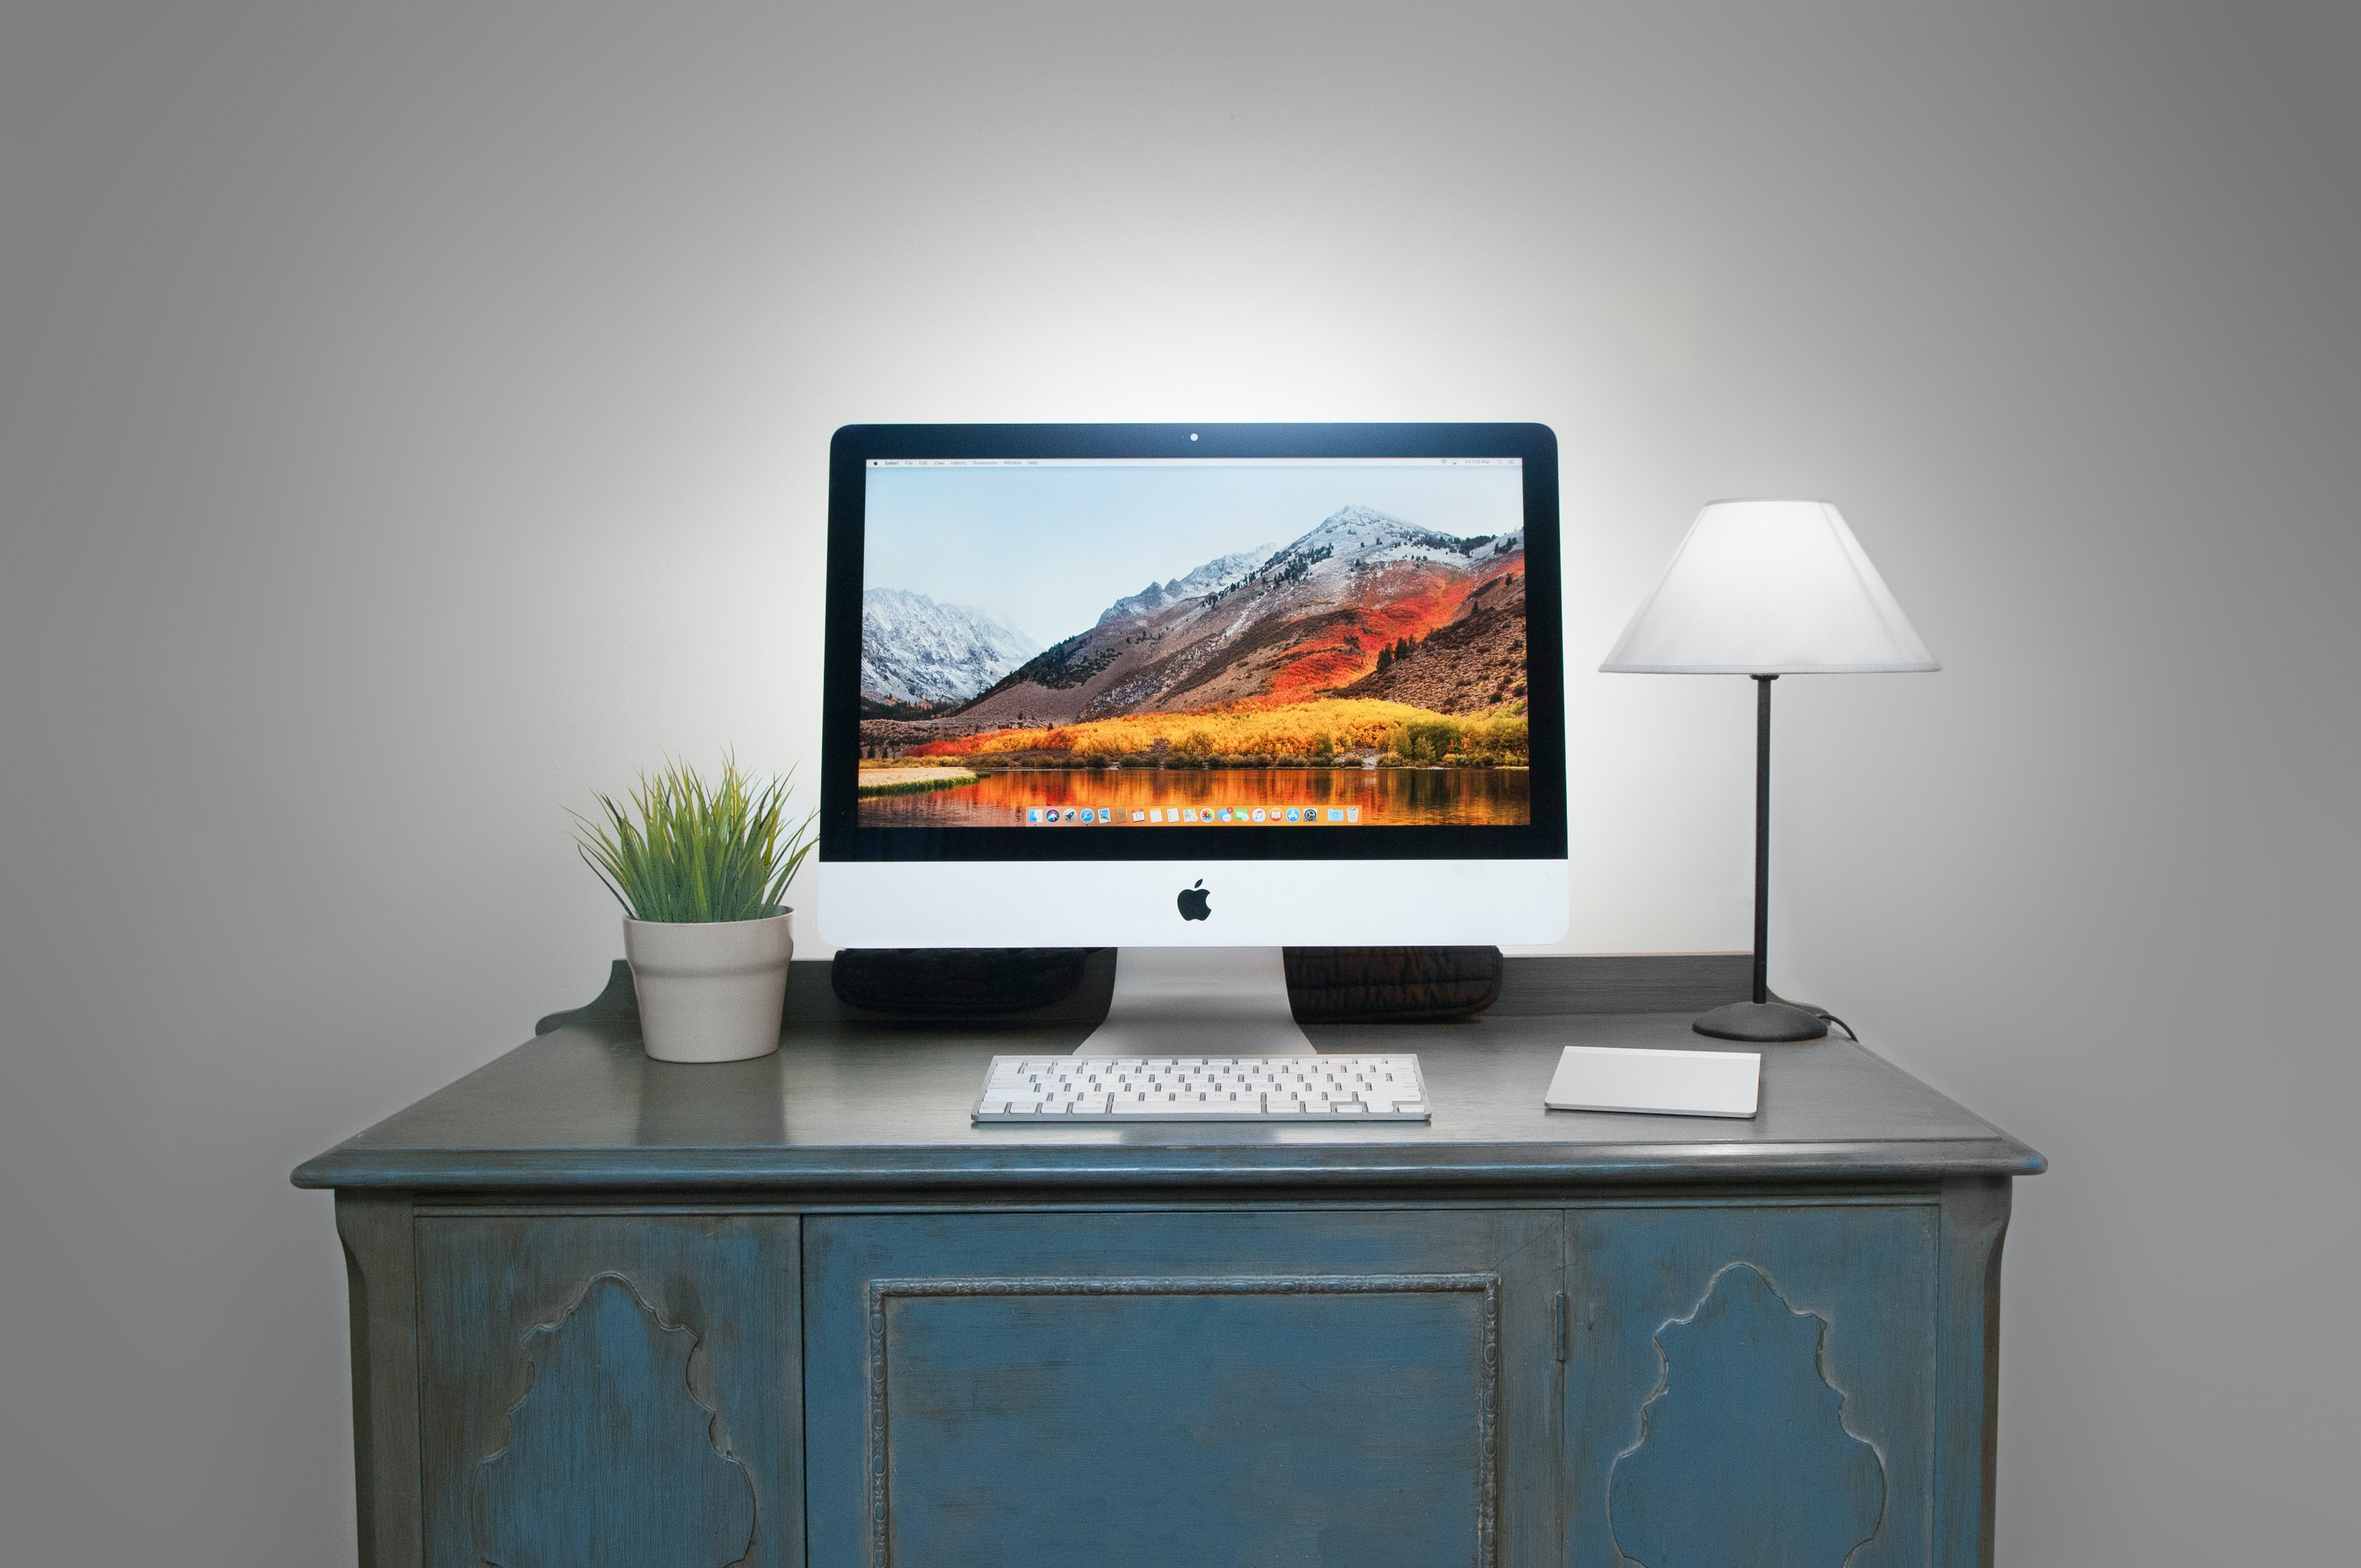 silver iMac and Apple Magic Keyboard on table